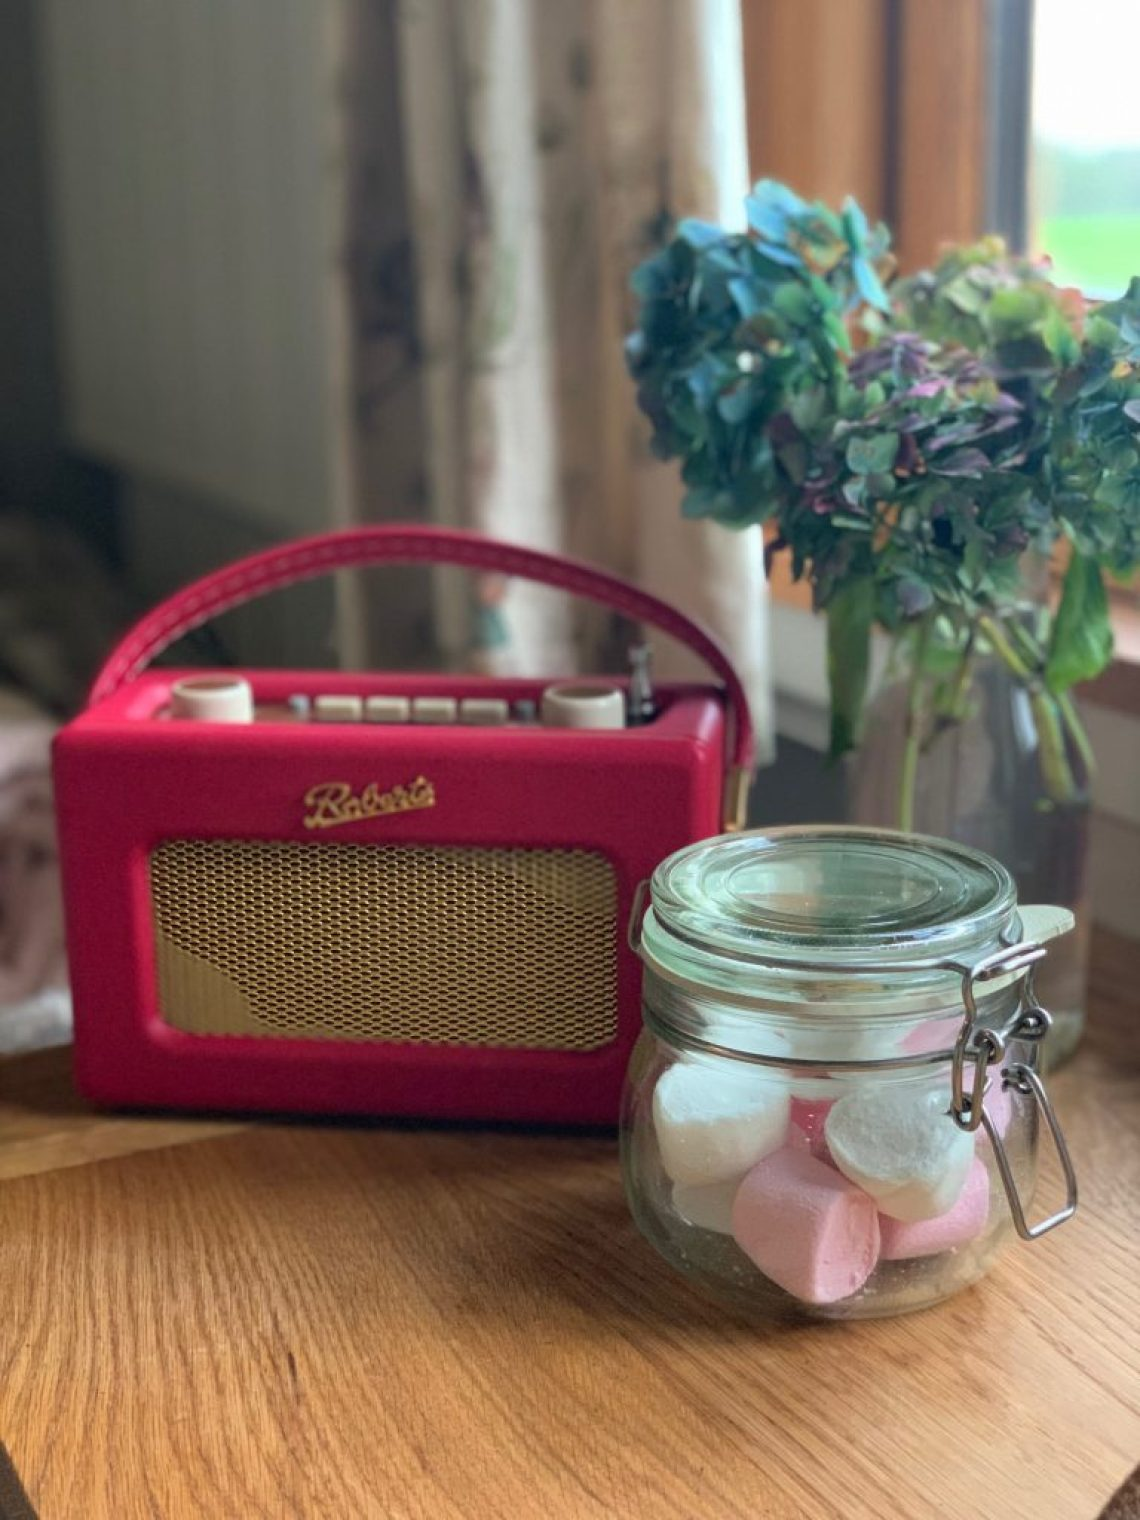 A red Roberts radio next to a bunch of hydrangeas and a jar of marshmallows